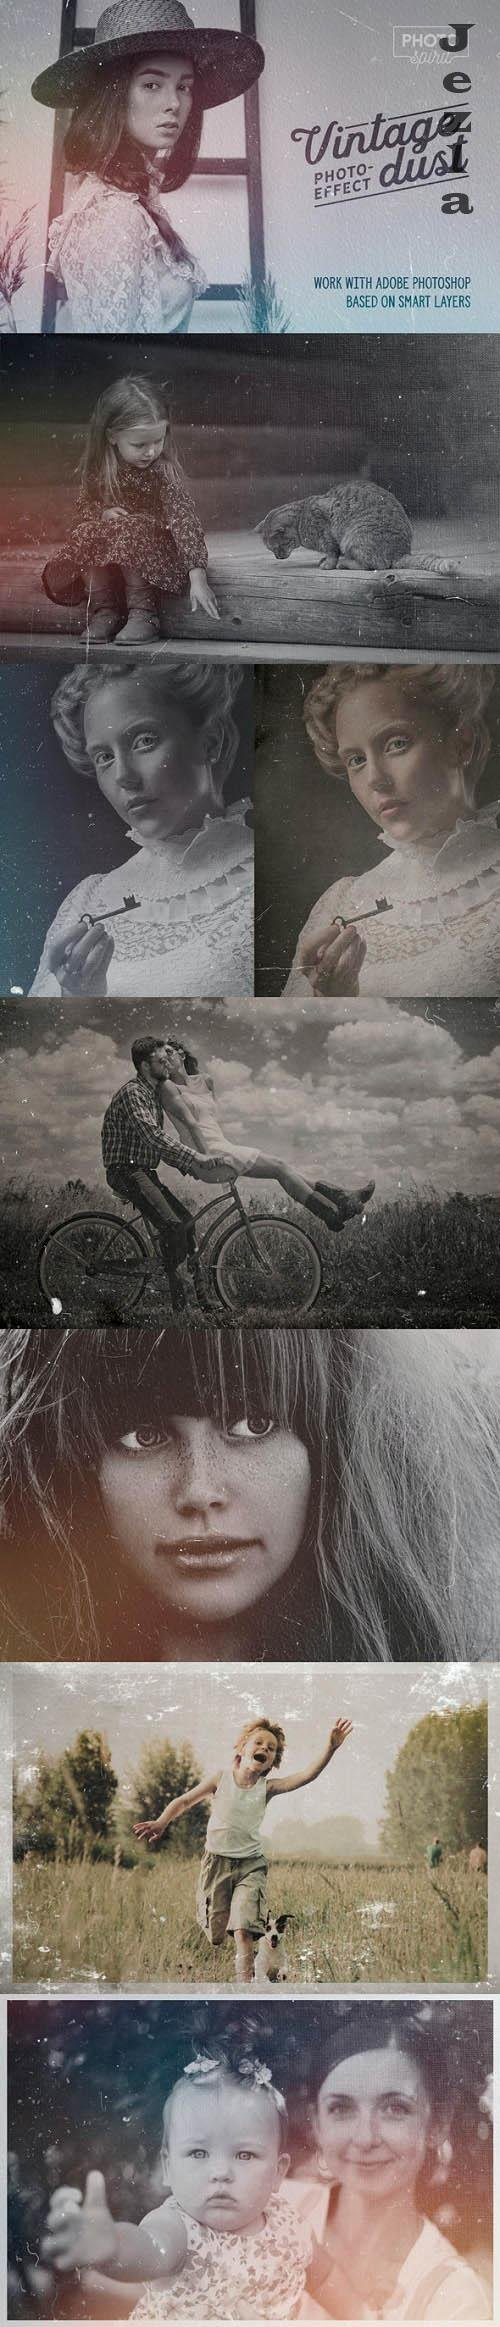 Dust And Scratches Film Effect - 25243270 - 4037958